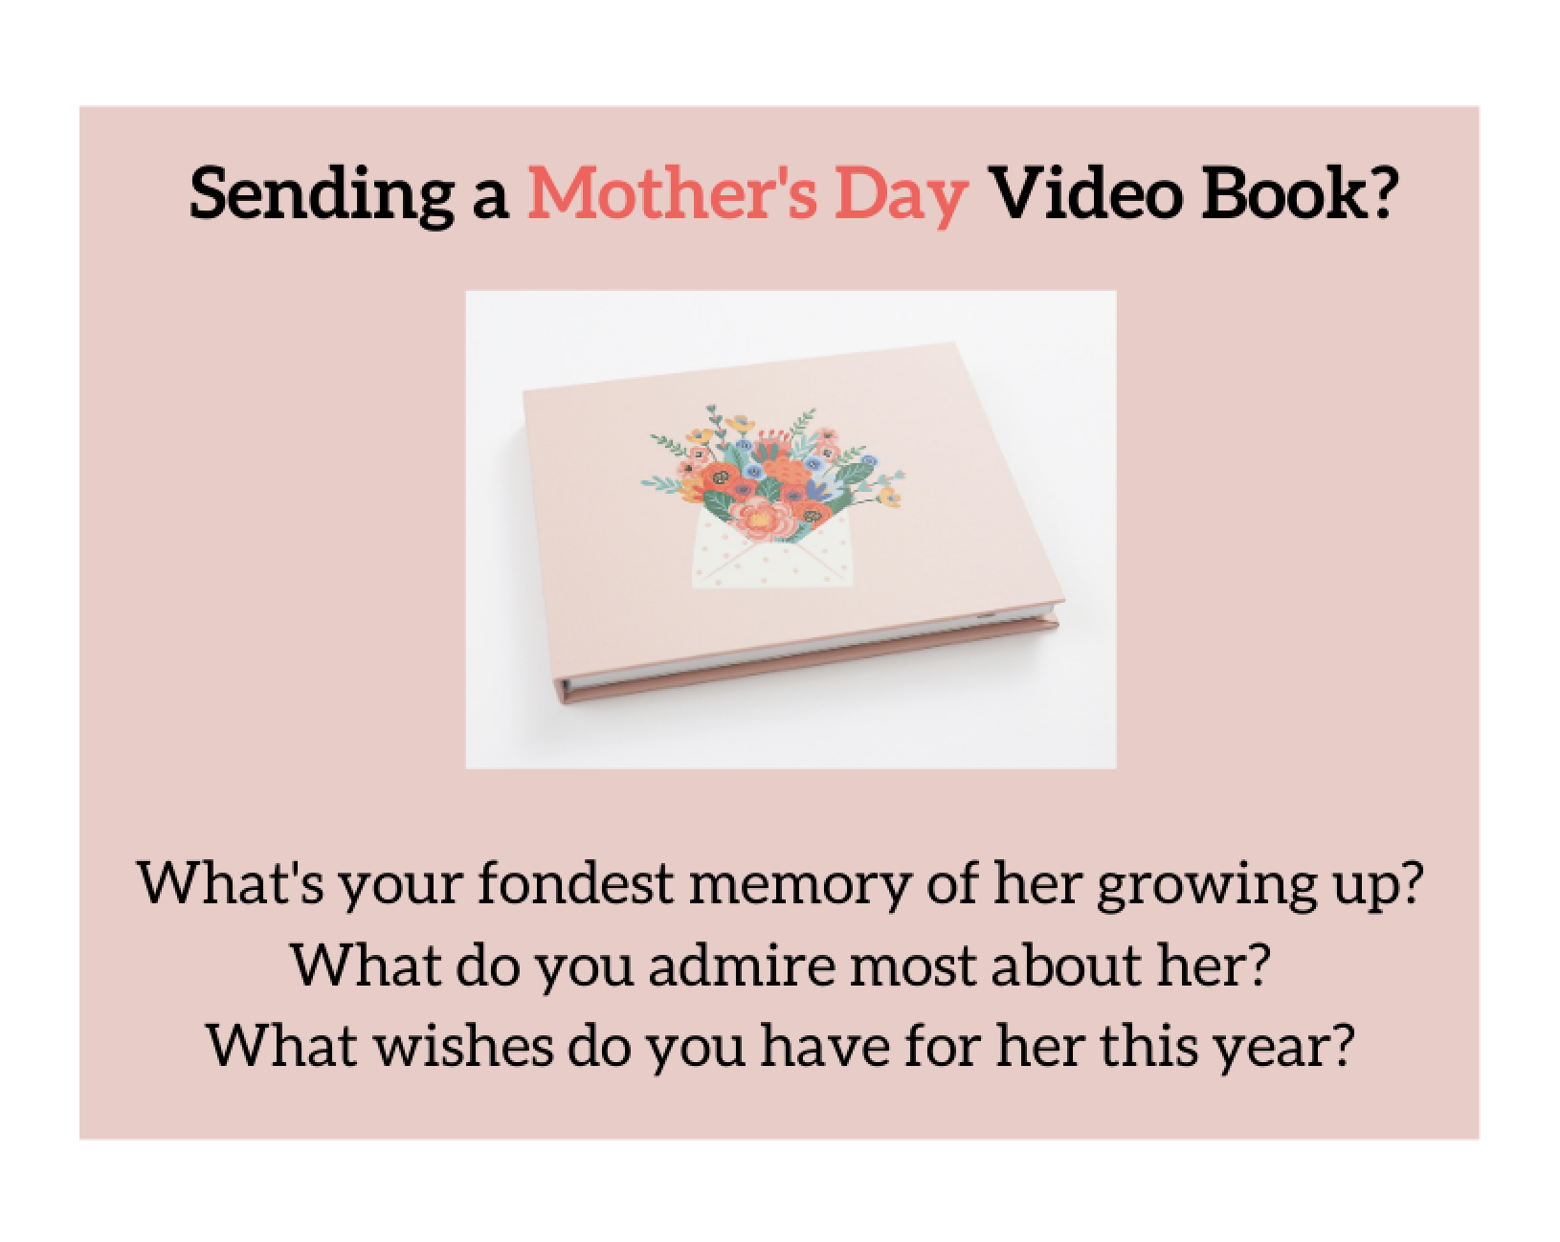 Video book with flowers on the cover